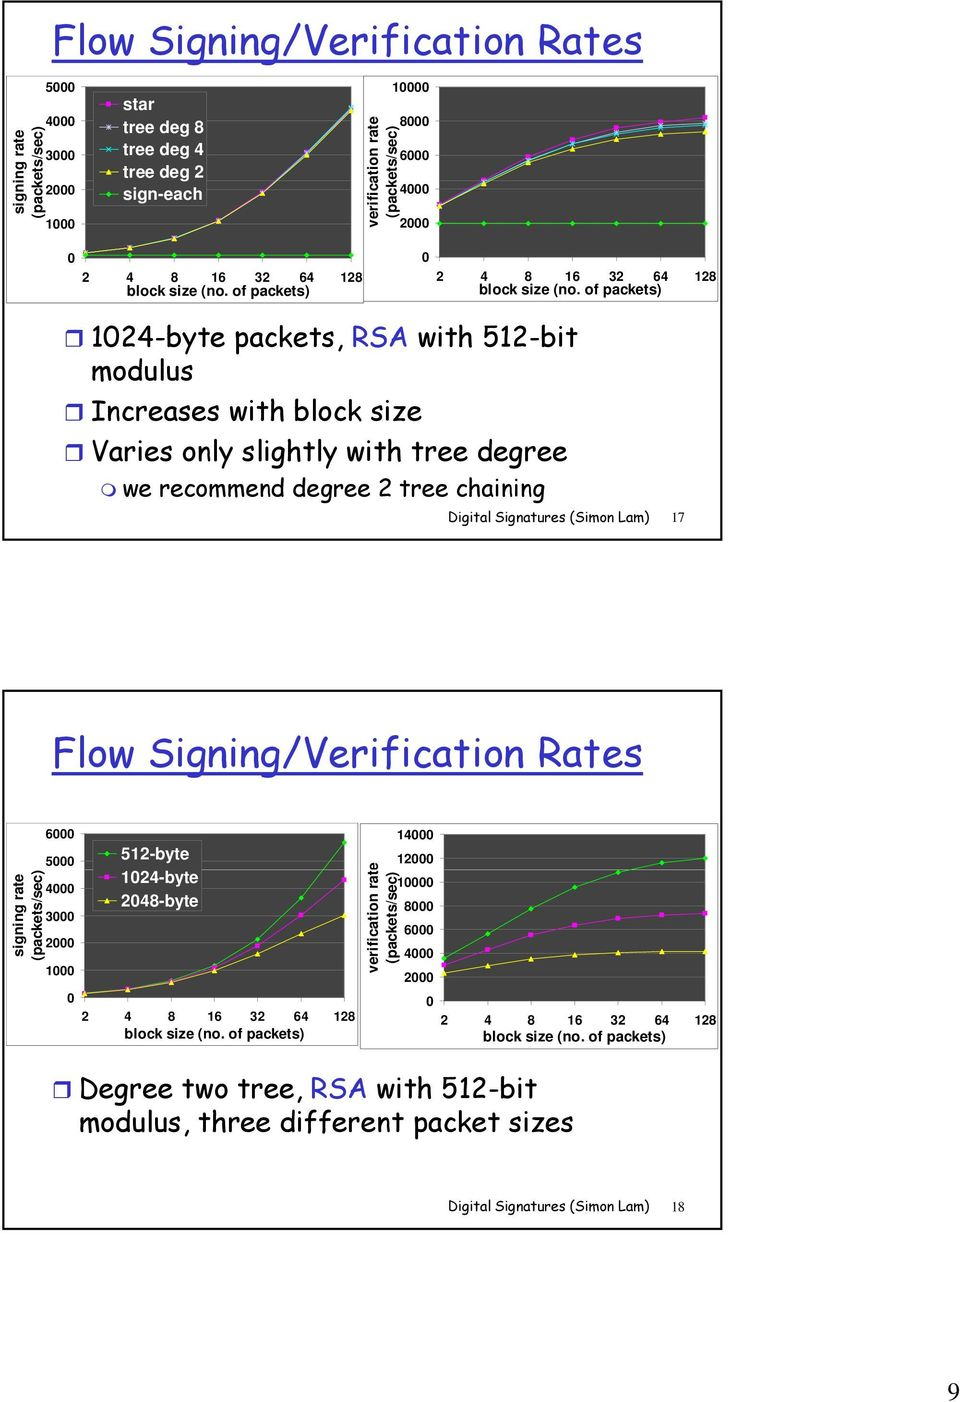 of packets) 1024-byte packets, RSA with 512-bit modulus Increases with block size Varies only slightly with tree degree we recommend degree 2 tree chaining Digital Signatures (Simon Lam) 17 Flow